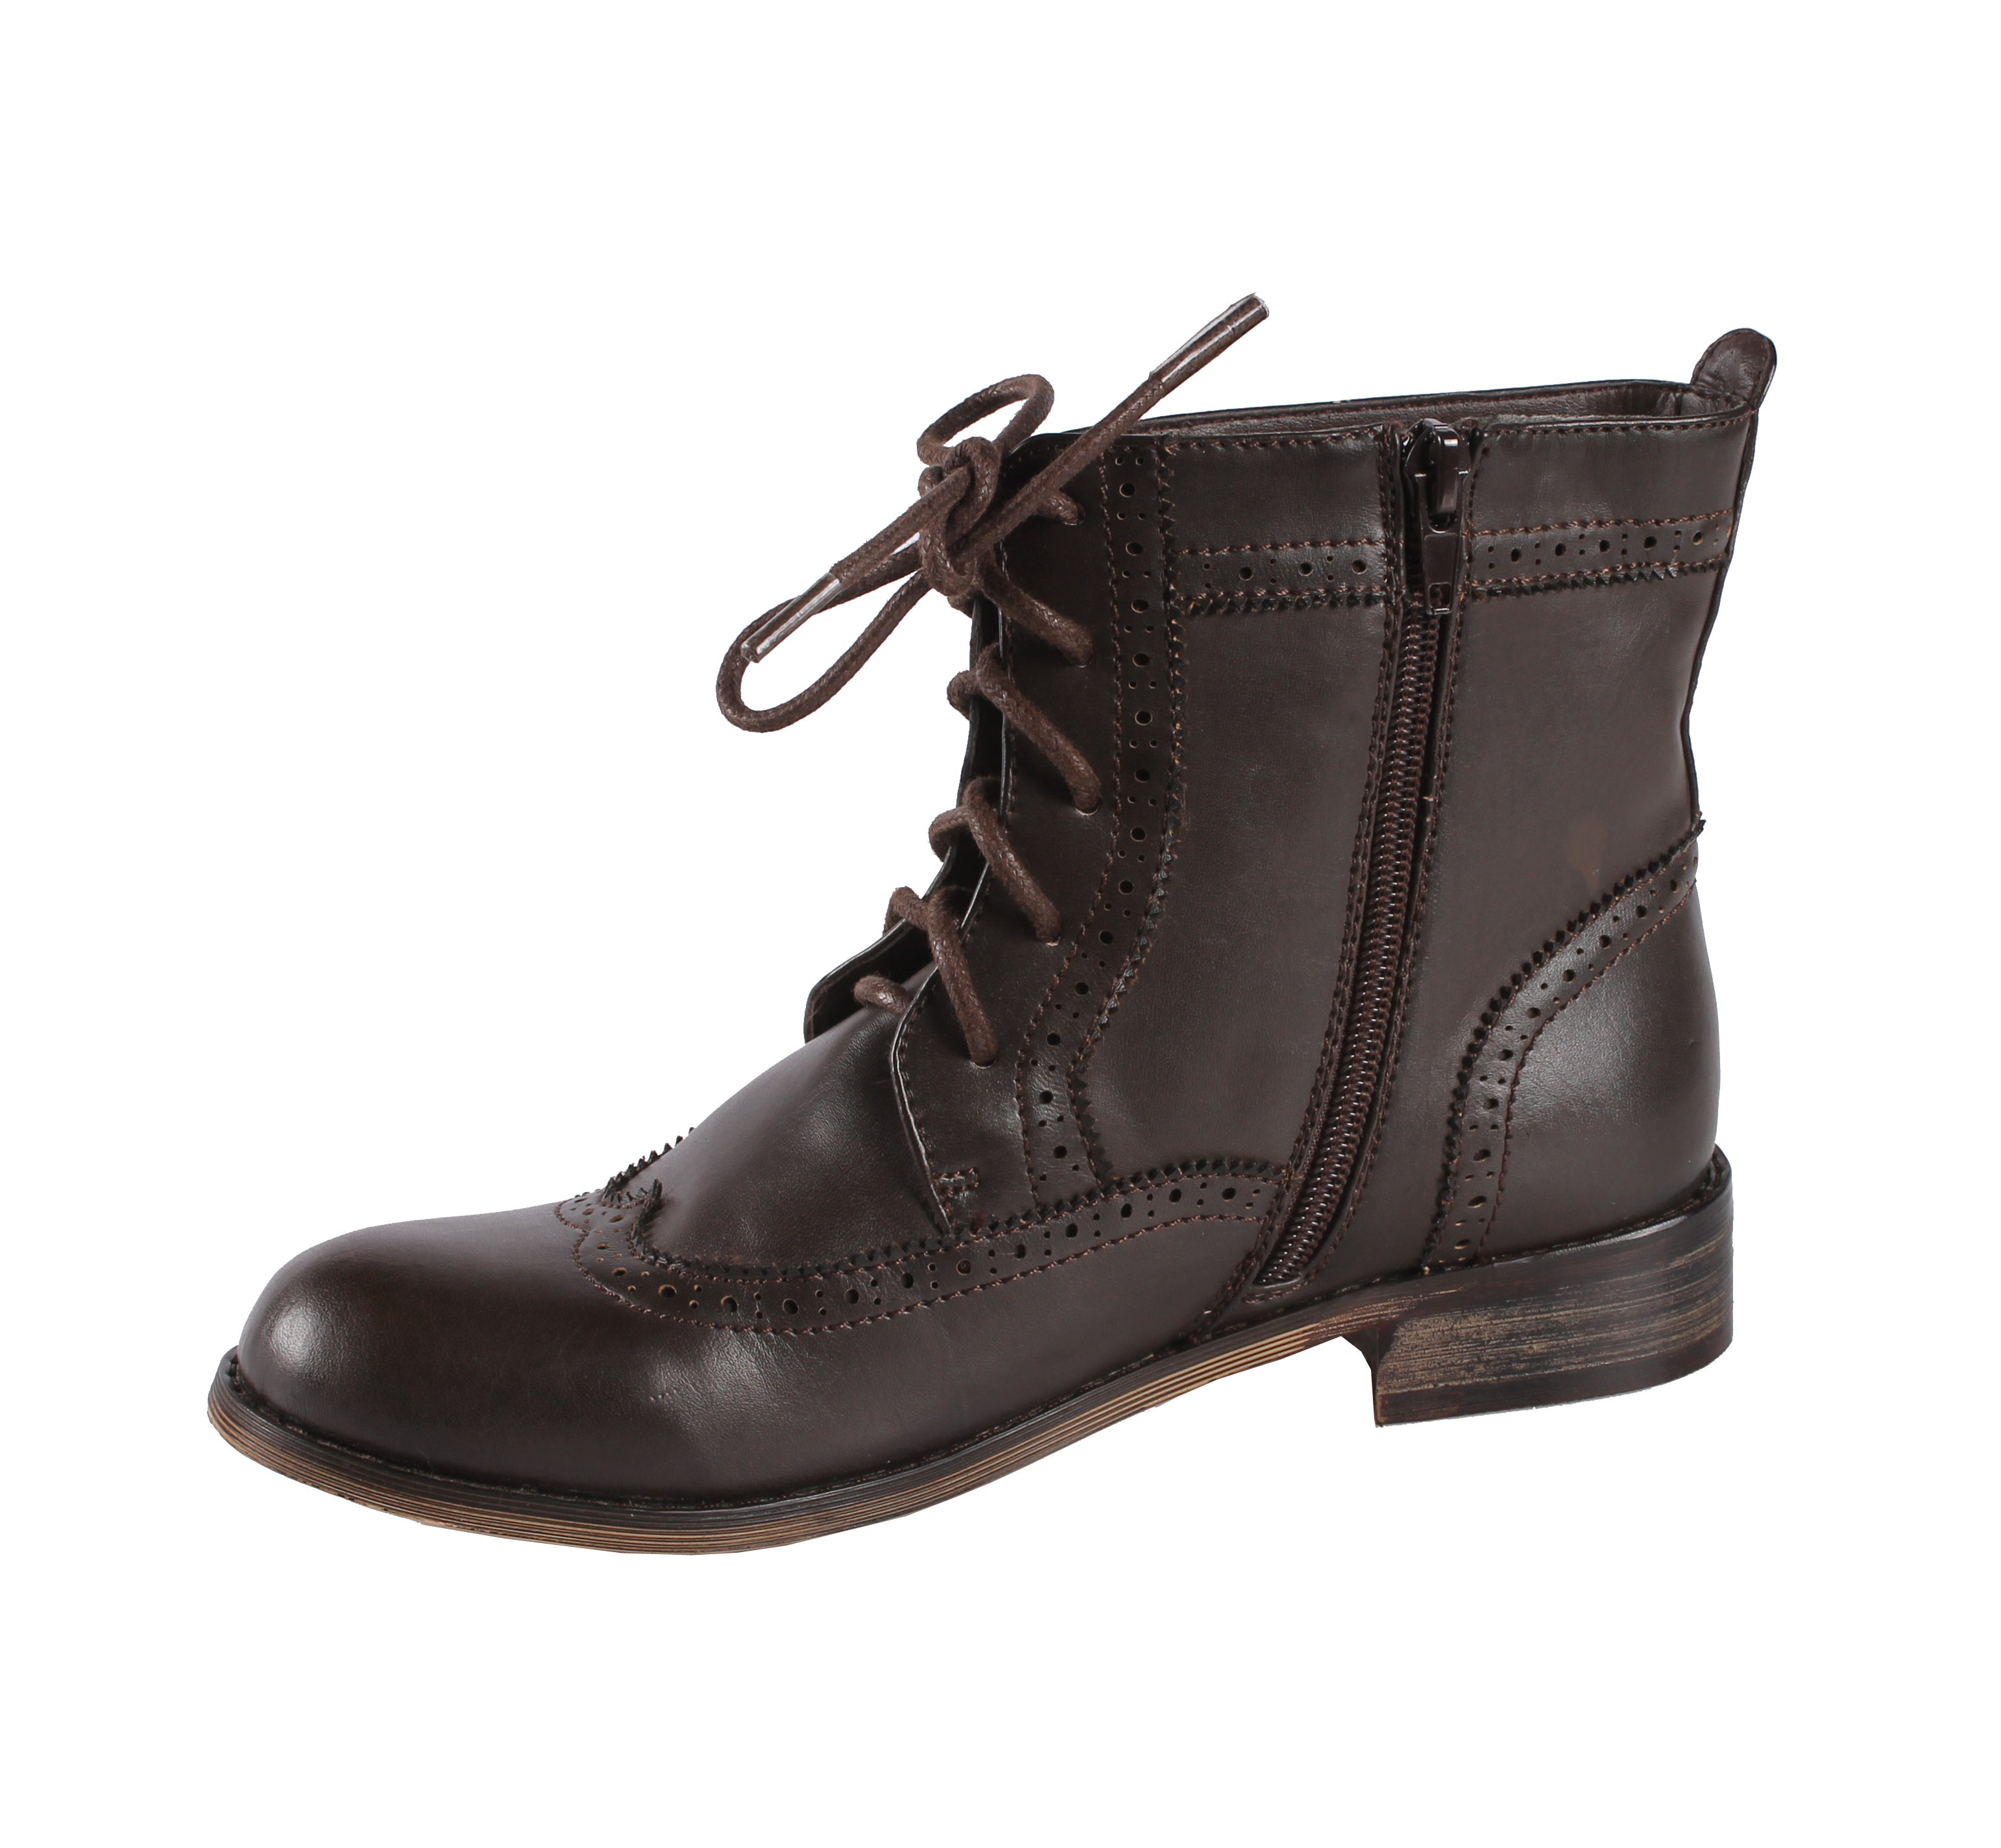 Jacobies by Beston Women's Black 'Cowgirl-5' Combat Ankle Boots